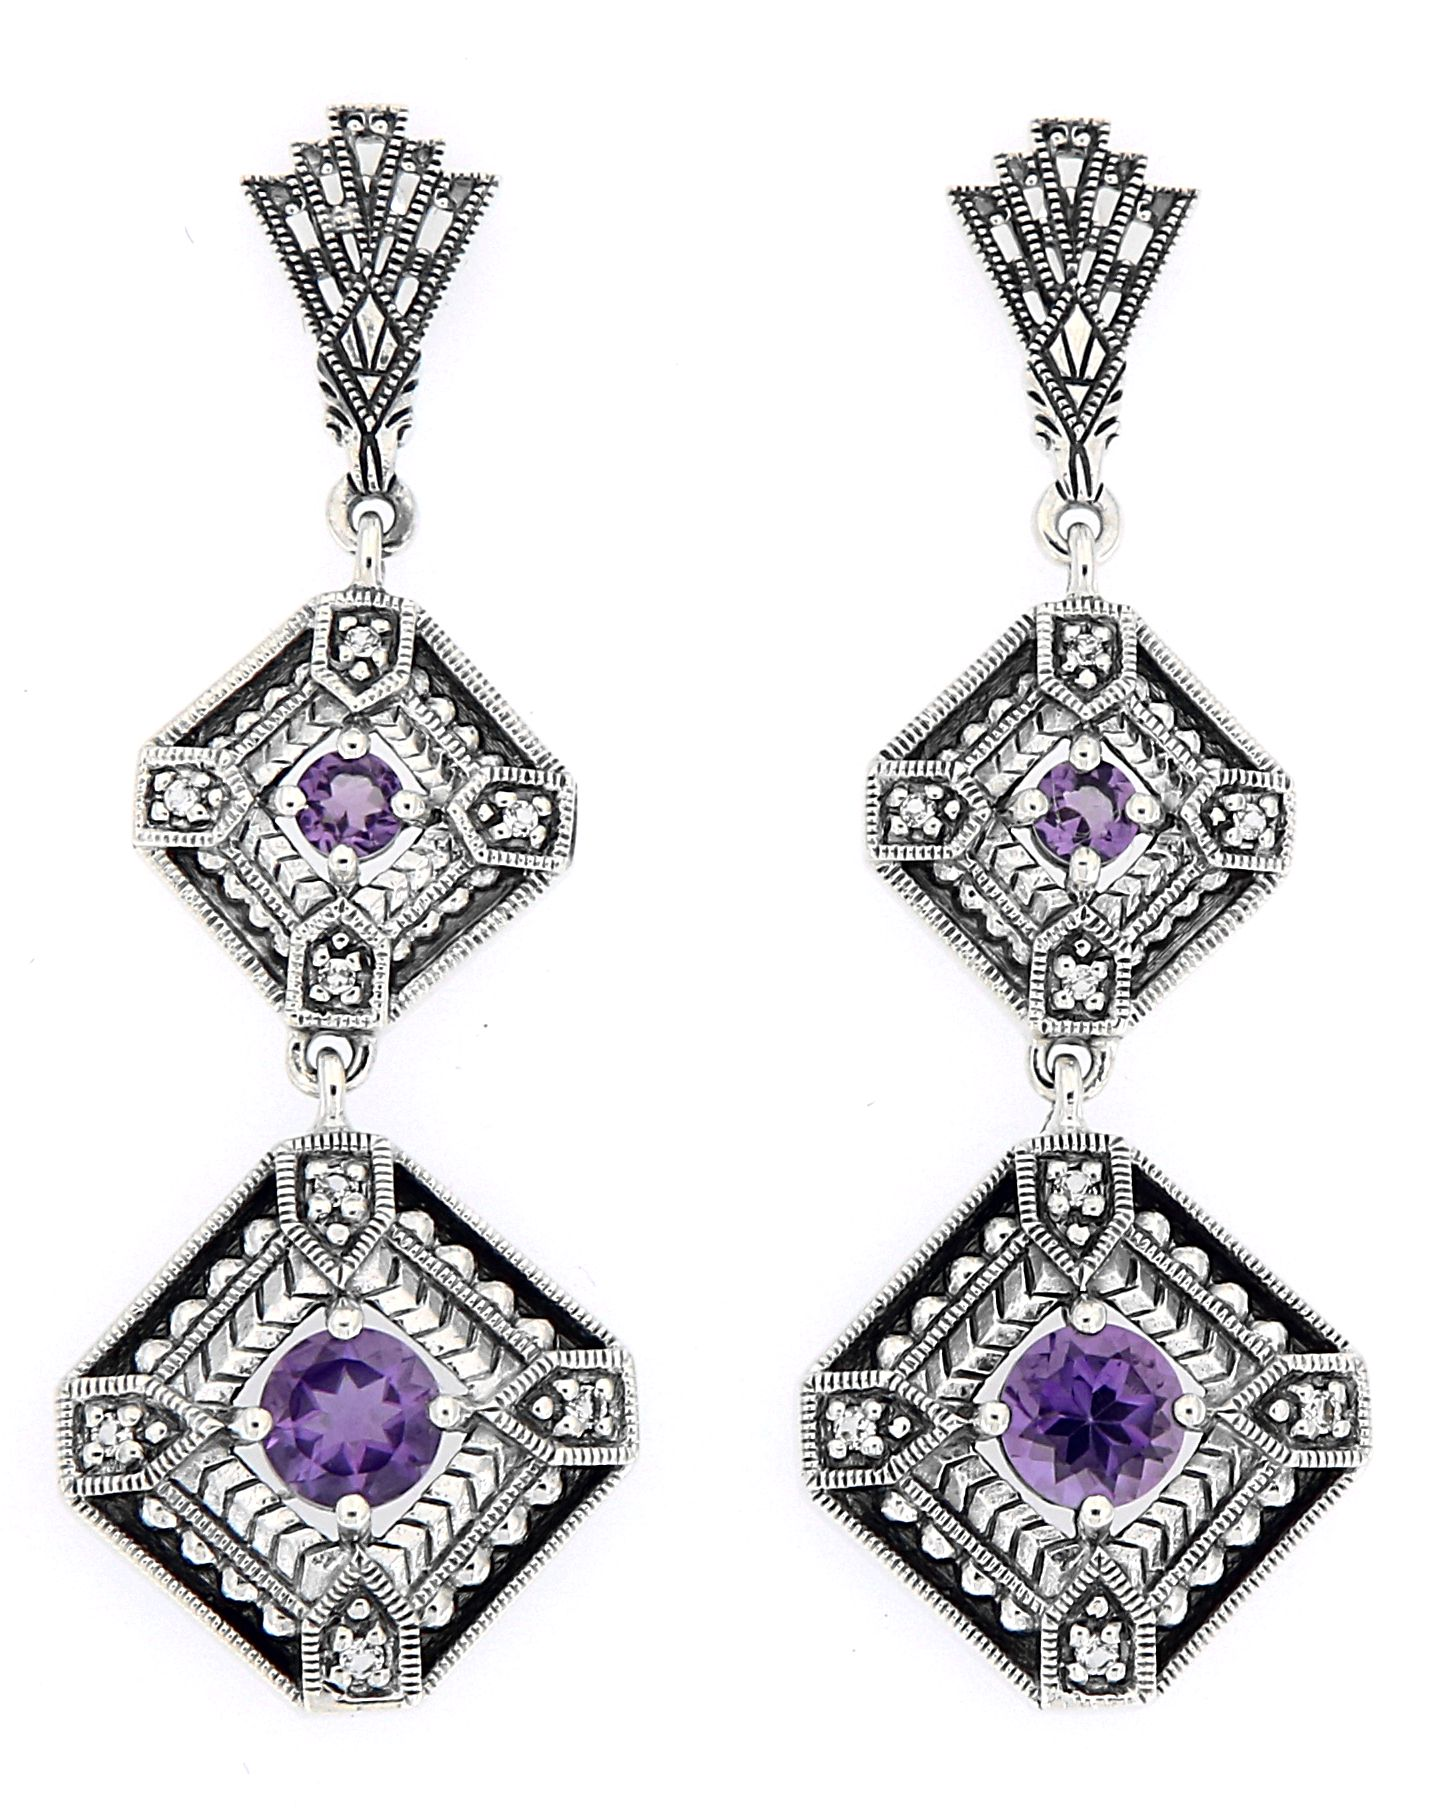 Antique Style Jewelry And Gifts Art Deco Style Amethyst Two Tiered Earrings Sterling Silver Fe 280 Am